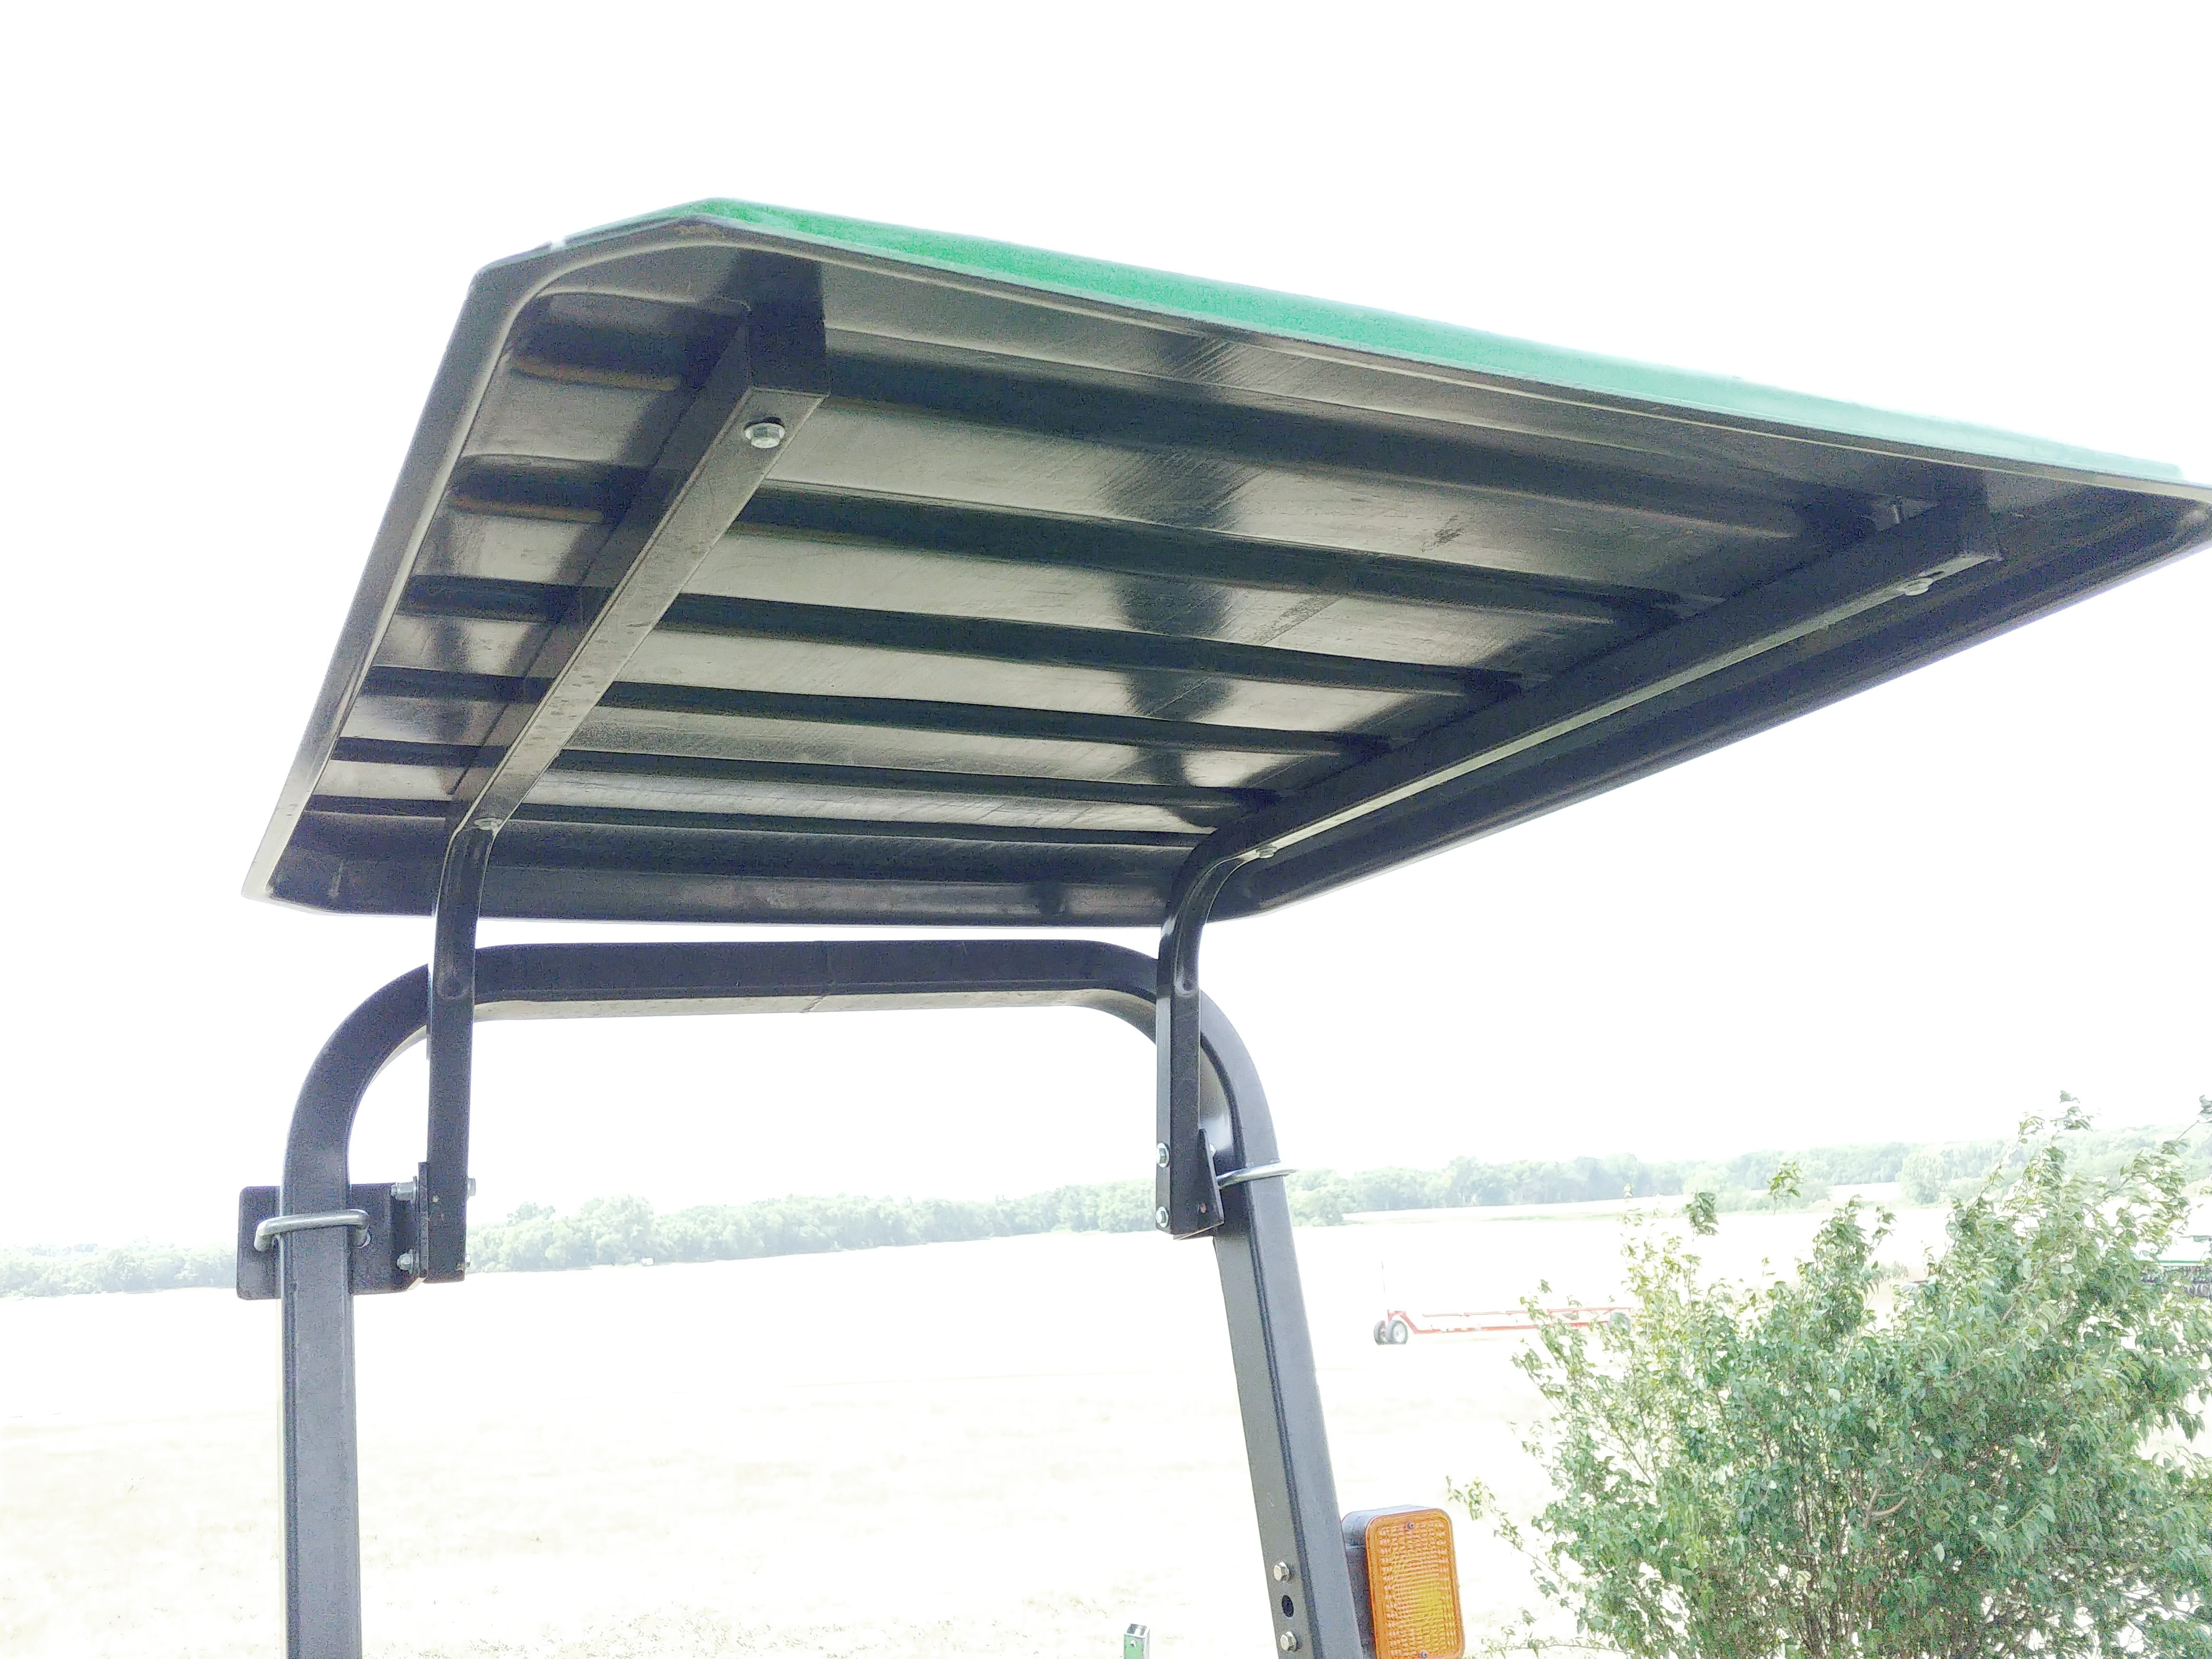 Front view of installed canopy